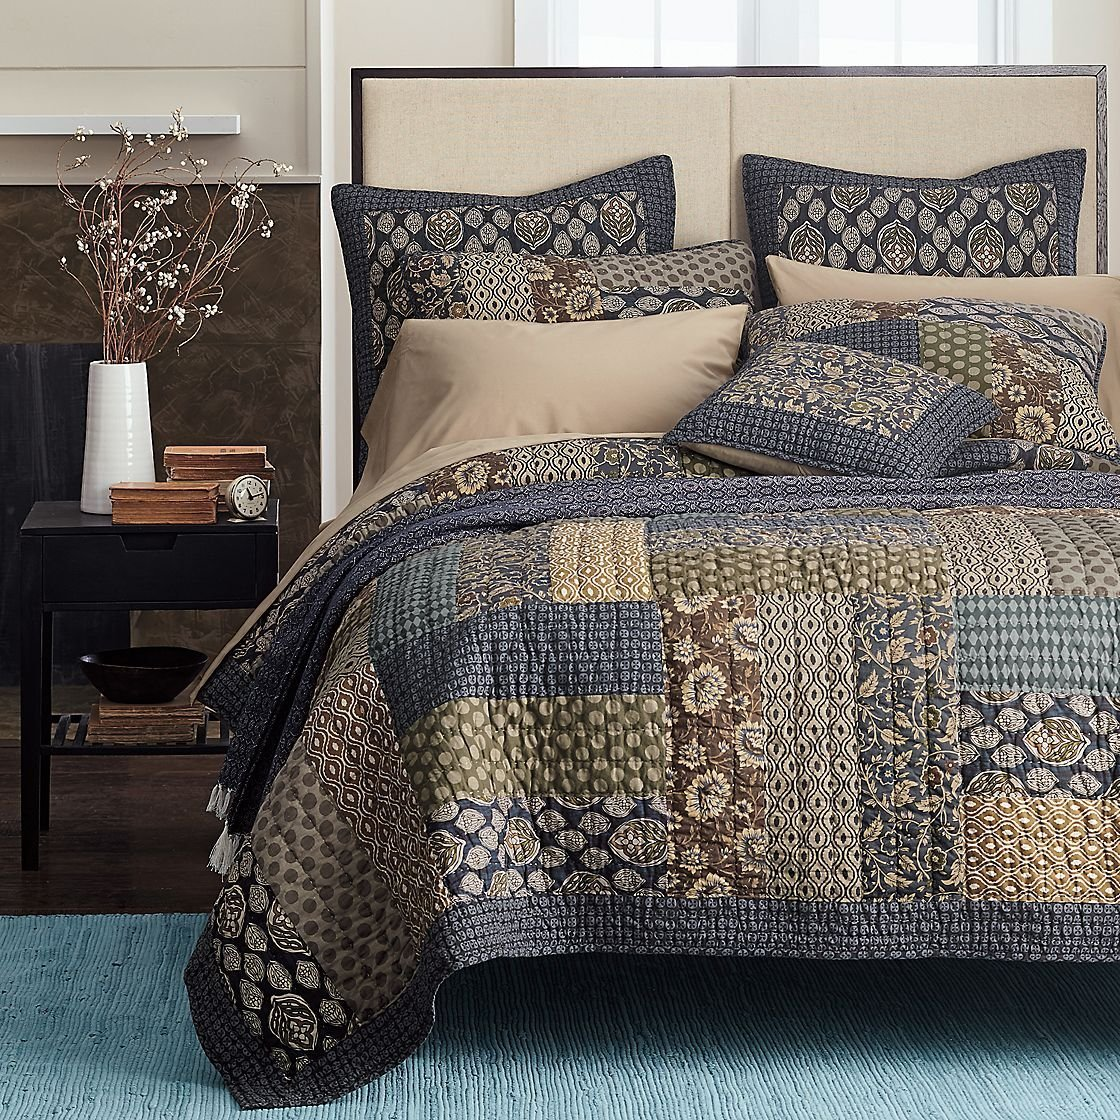 Tache Home Fashion Cotton Royal Chambers Patchwork Floral Quilt Set, California King, Navy Blue